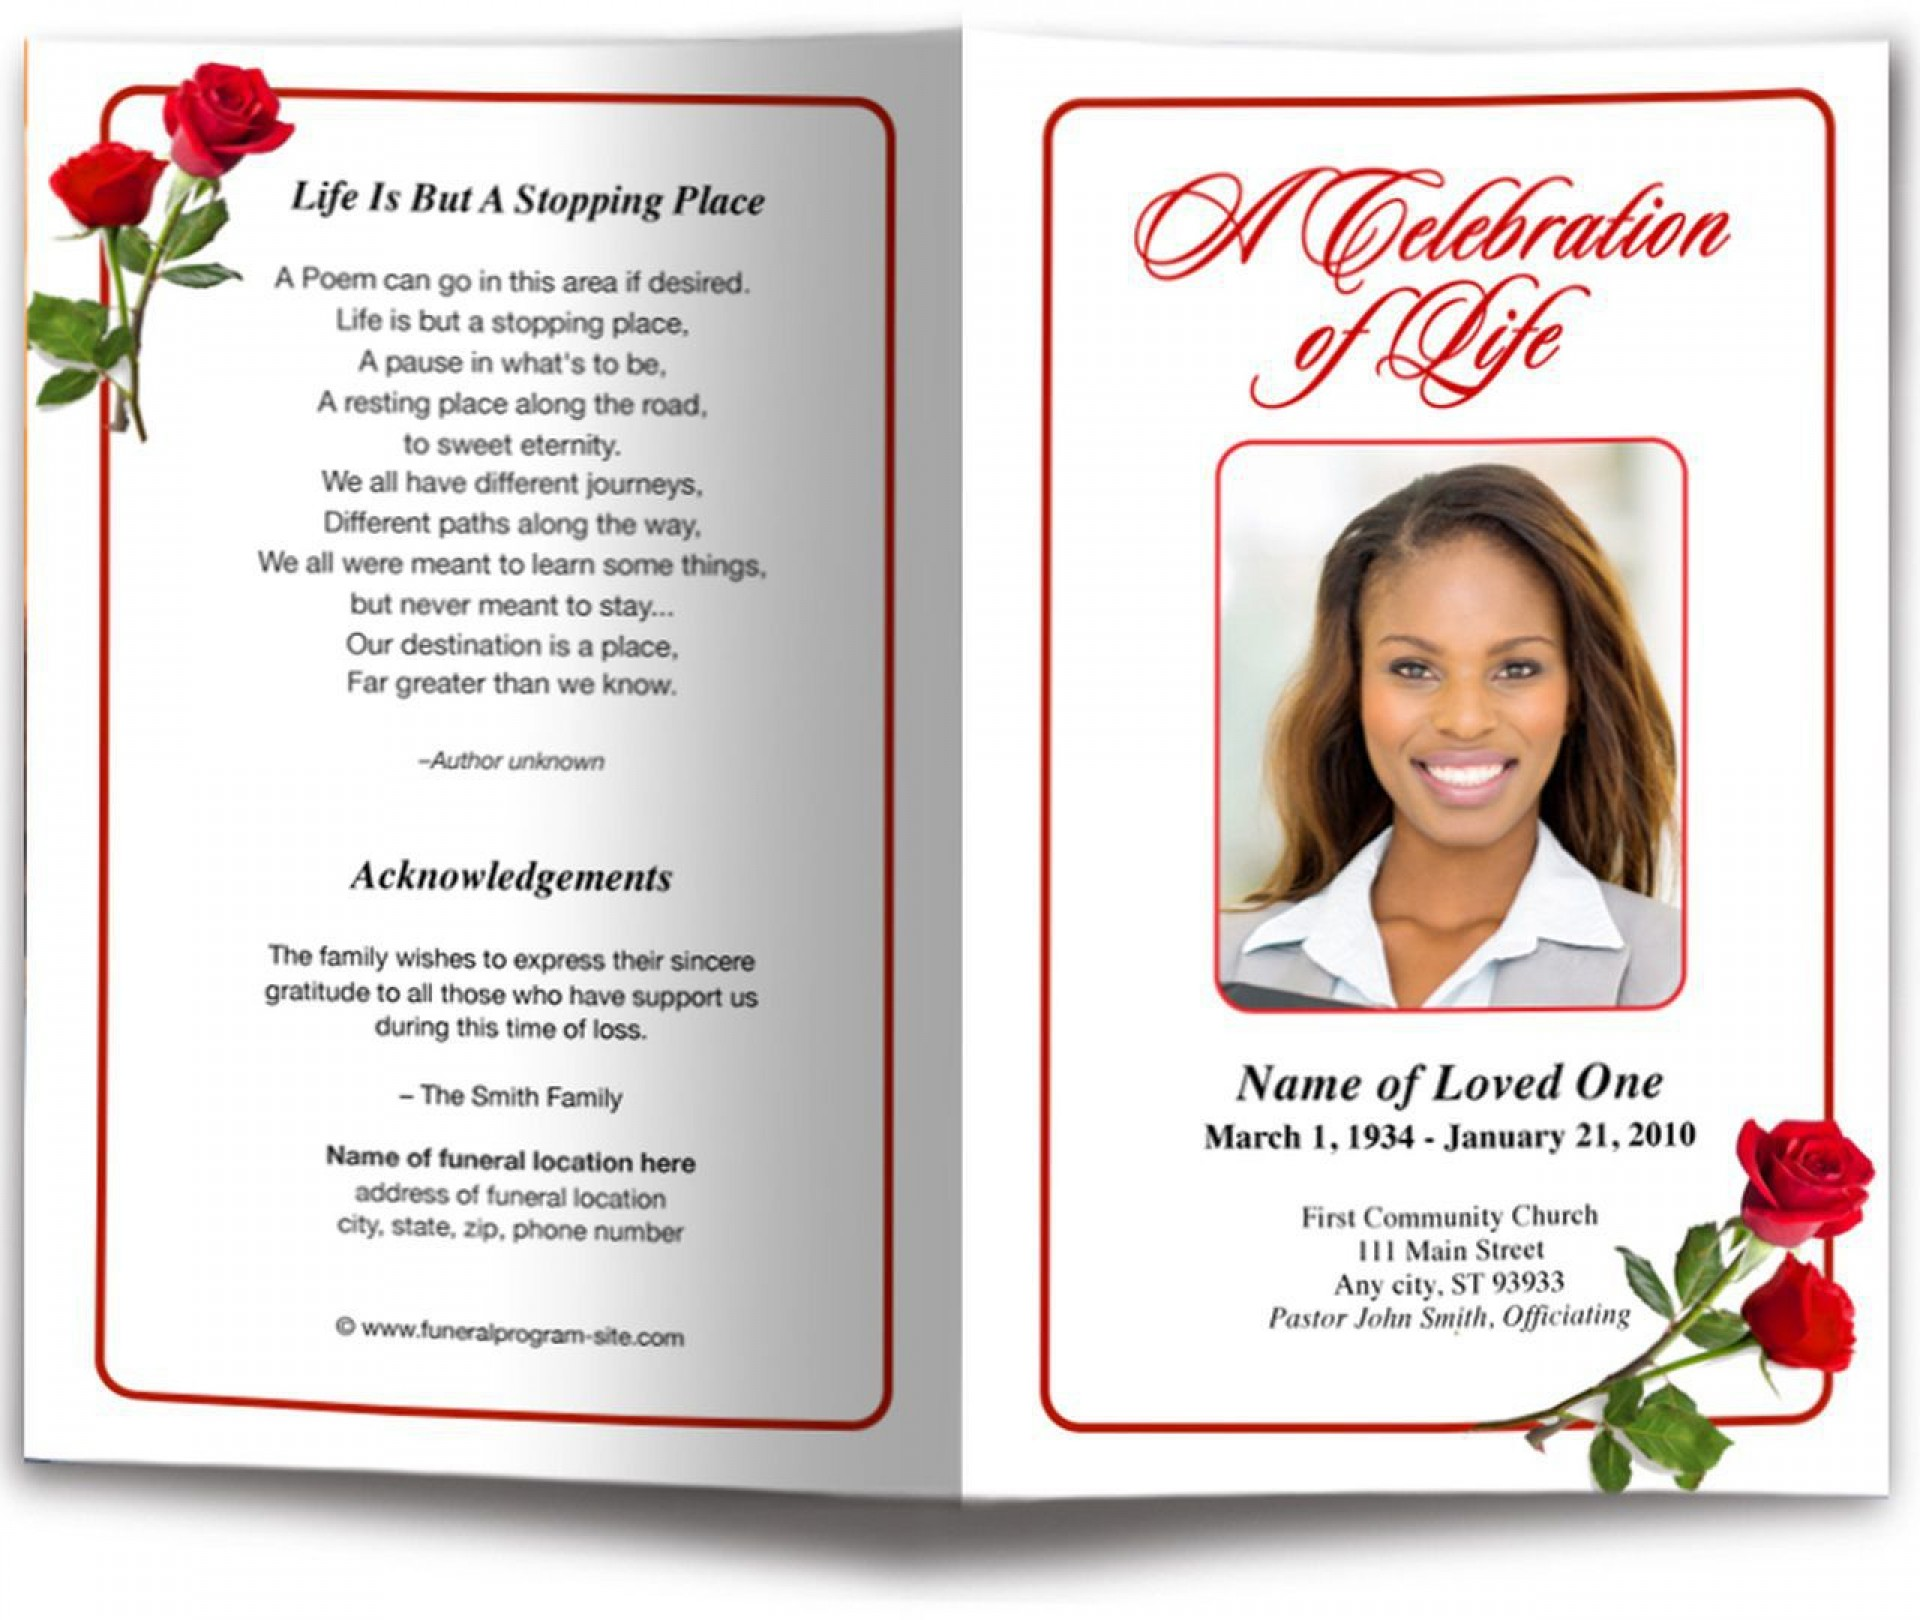 003 Formidable Funeral Program Template Free Photo  Online Printable Download Publisher1920